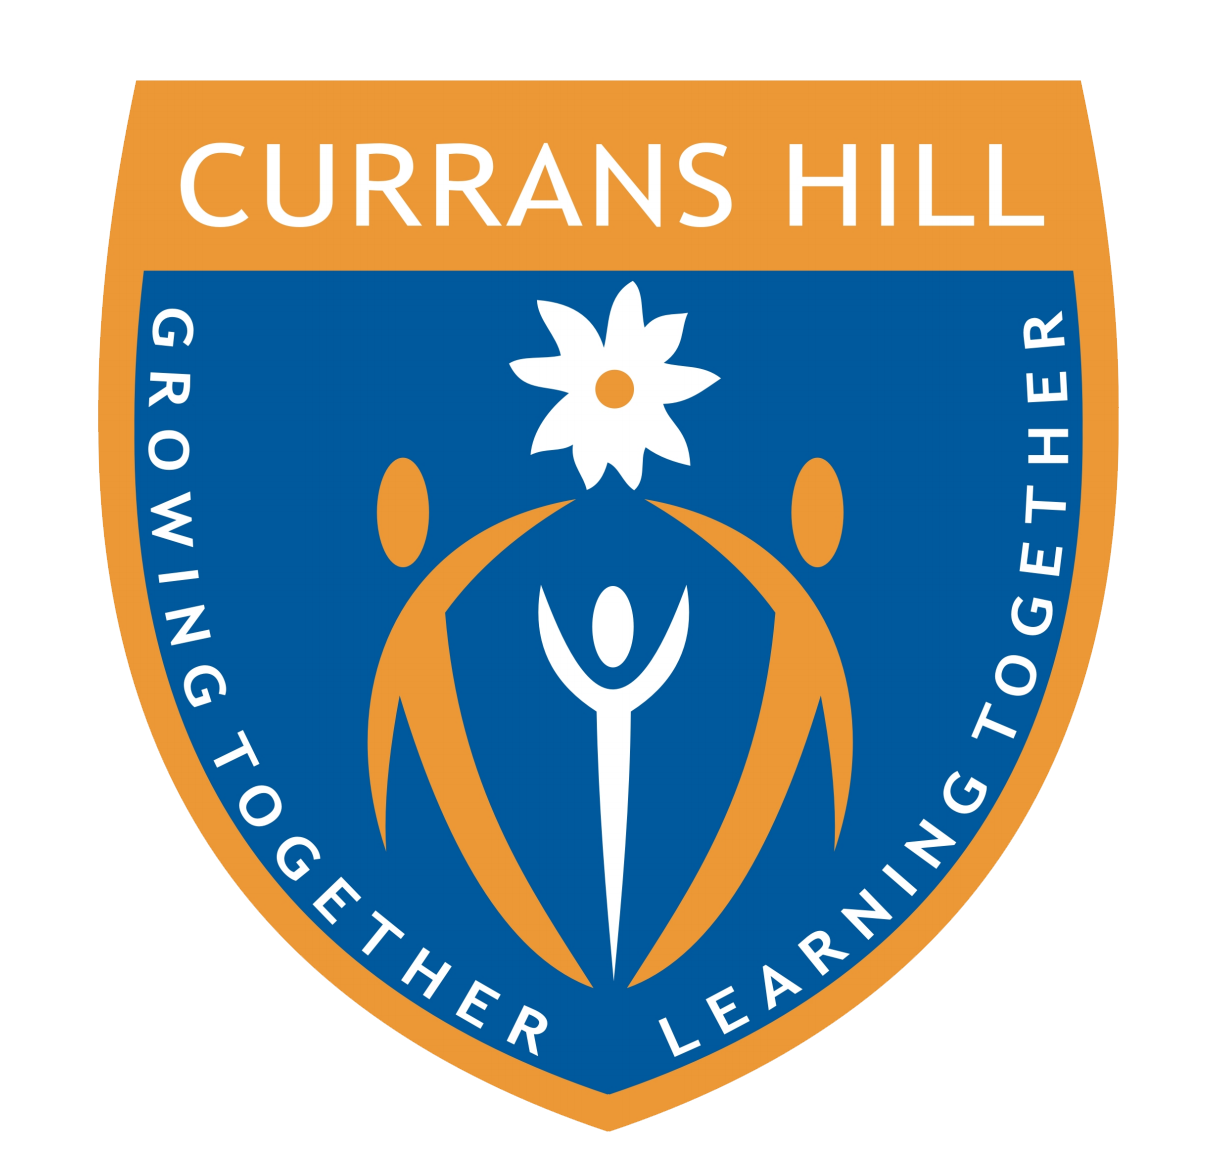 Currans Hill Public School logo